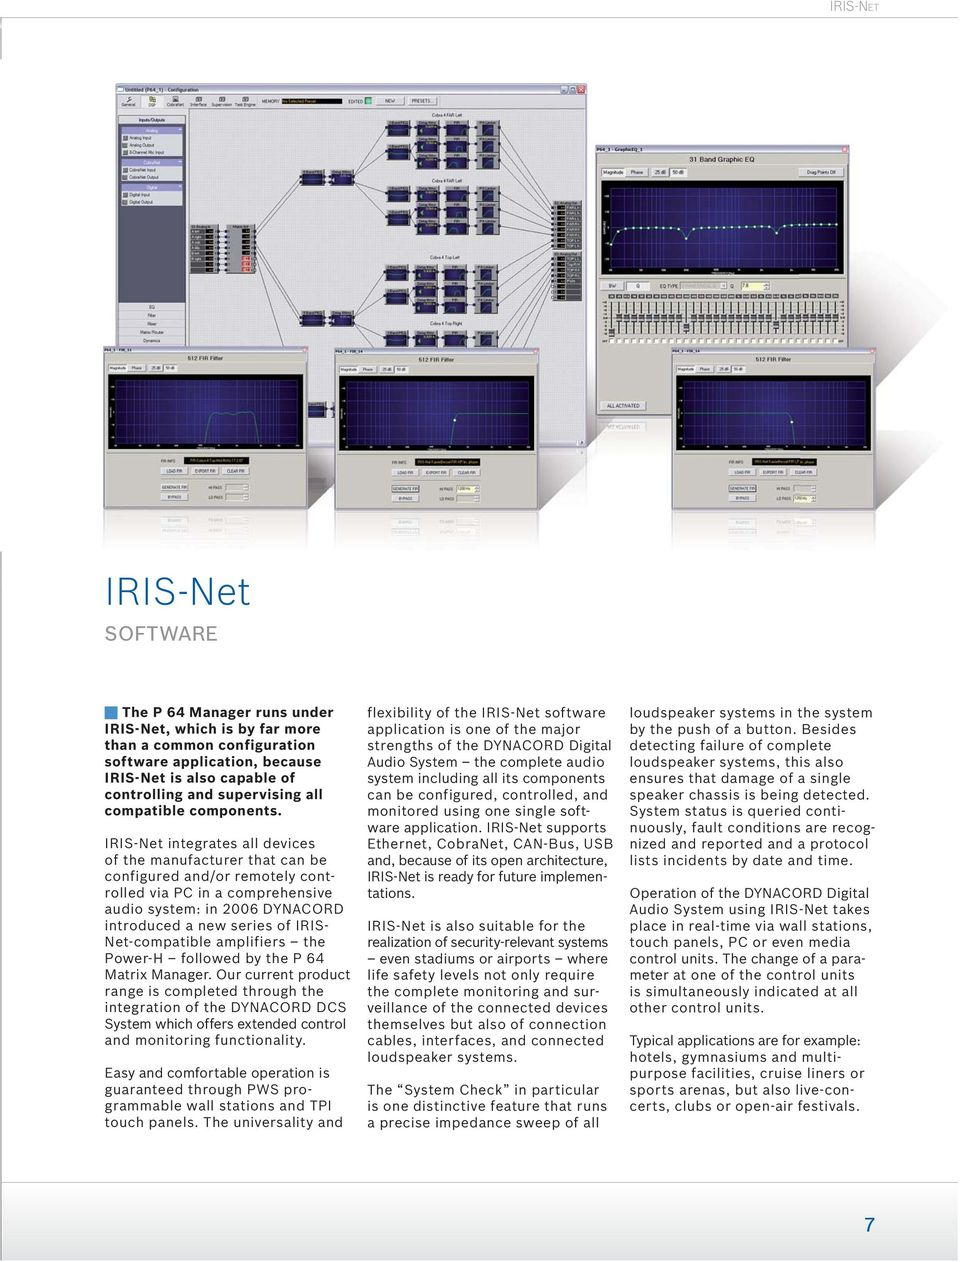 IRISNet integrates all devices of the manufacturer that can be configured and/or remotely controlled via PC in a comprehensive audio system: in 2006 DYNACORD introduced a new series of IRIS